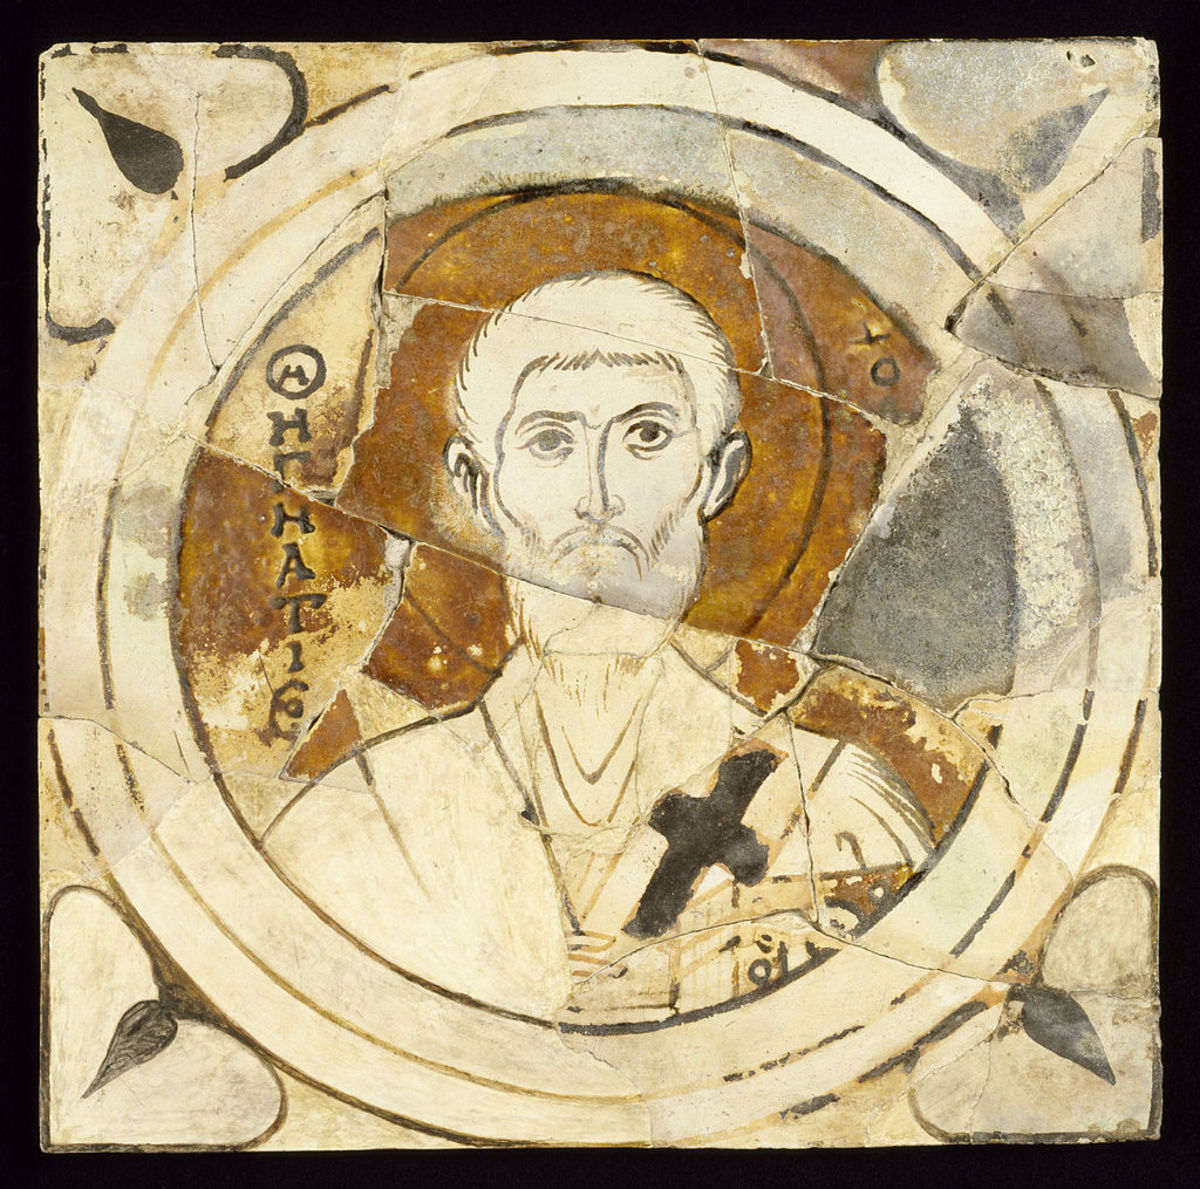 Ignatius of Antioch: It is Interesting that Ignatius of Antioch, writing c. 107A.D. made no mention of any bishop in Rome despite his emphases on obedience to the head elder in every other letter to the churches.